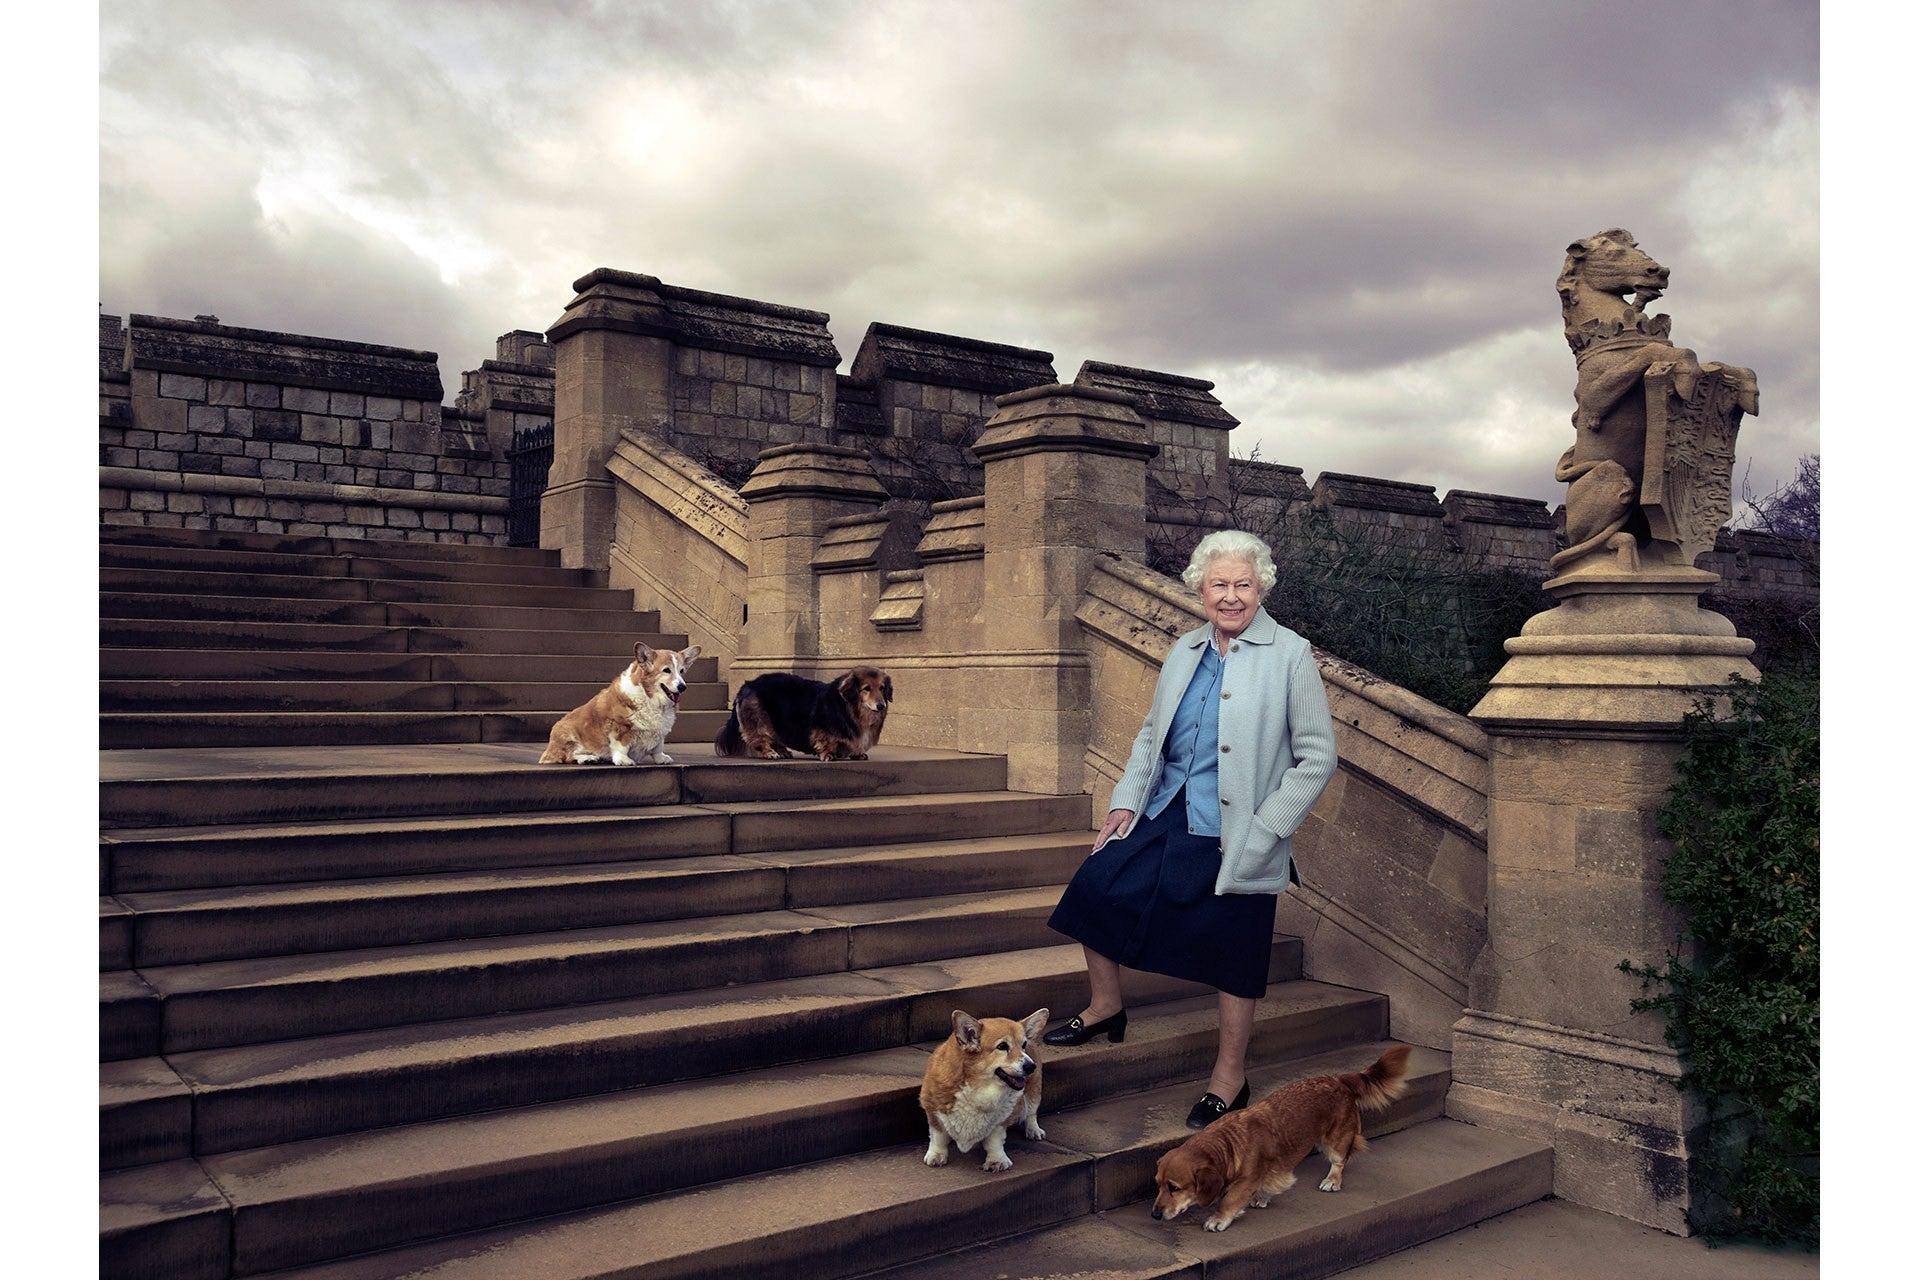 The Royal family and their dogs